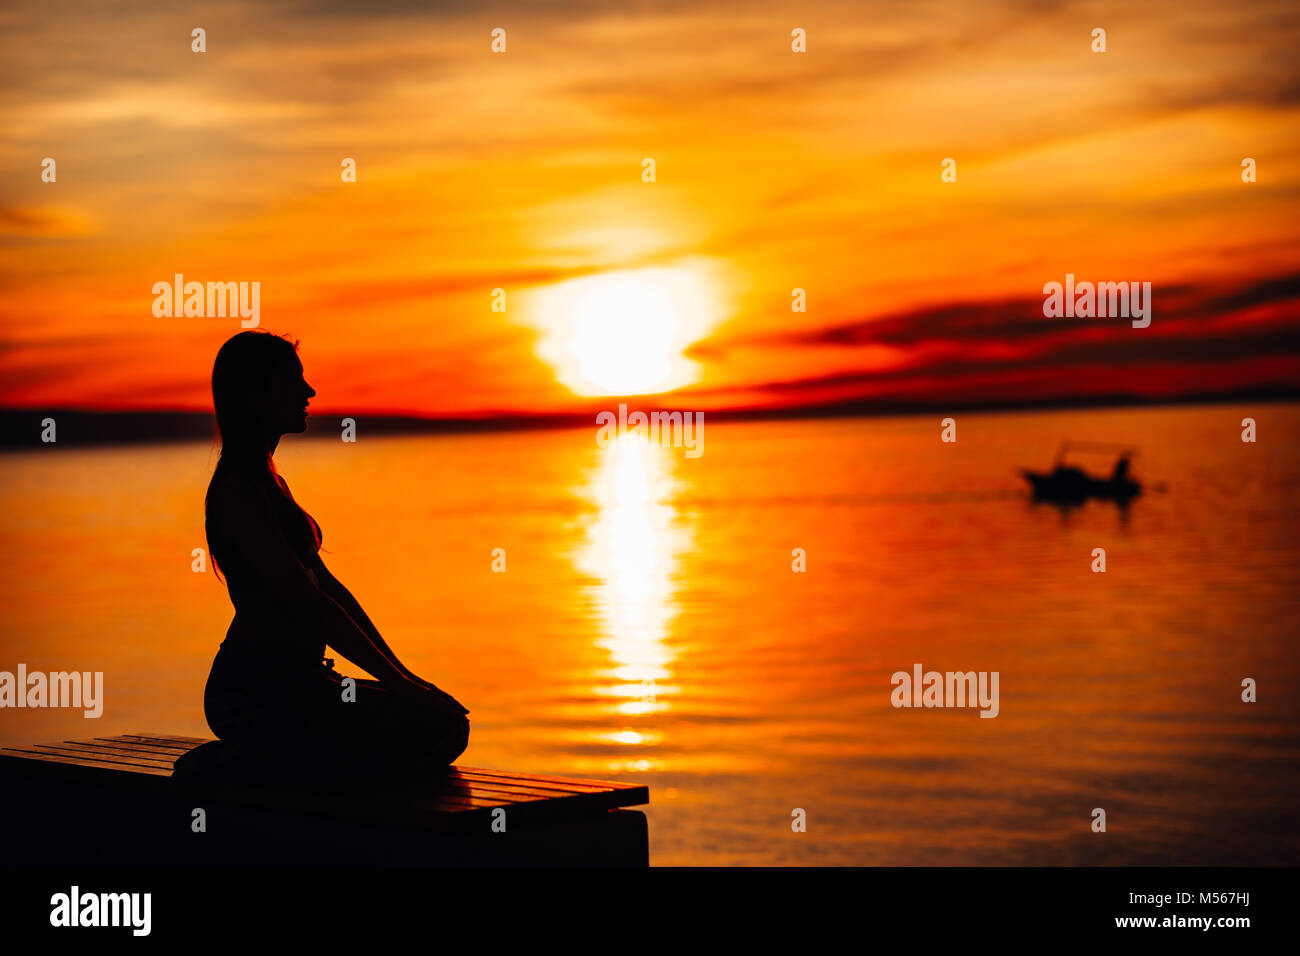 Carefree calm woman meditating in nature.Finding inner peace.Yoga practice.Spiritual healing lifestyle.Enjoying - Stock Image